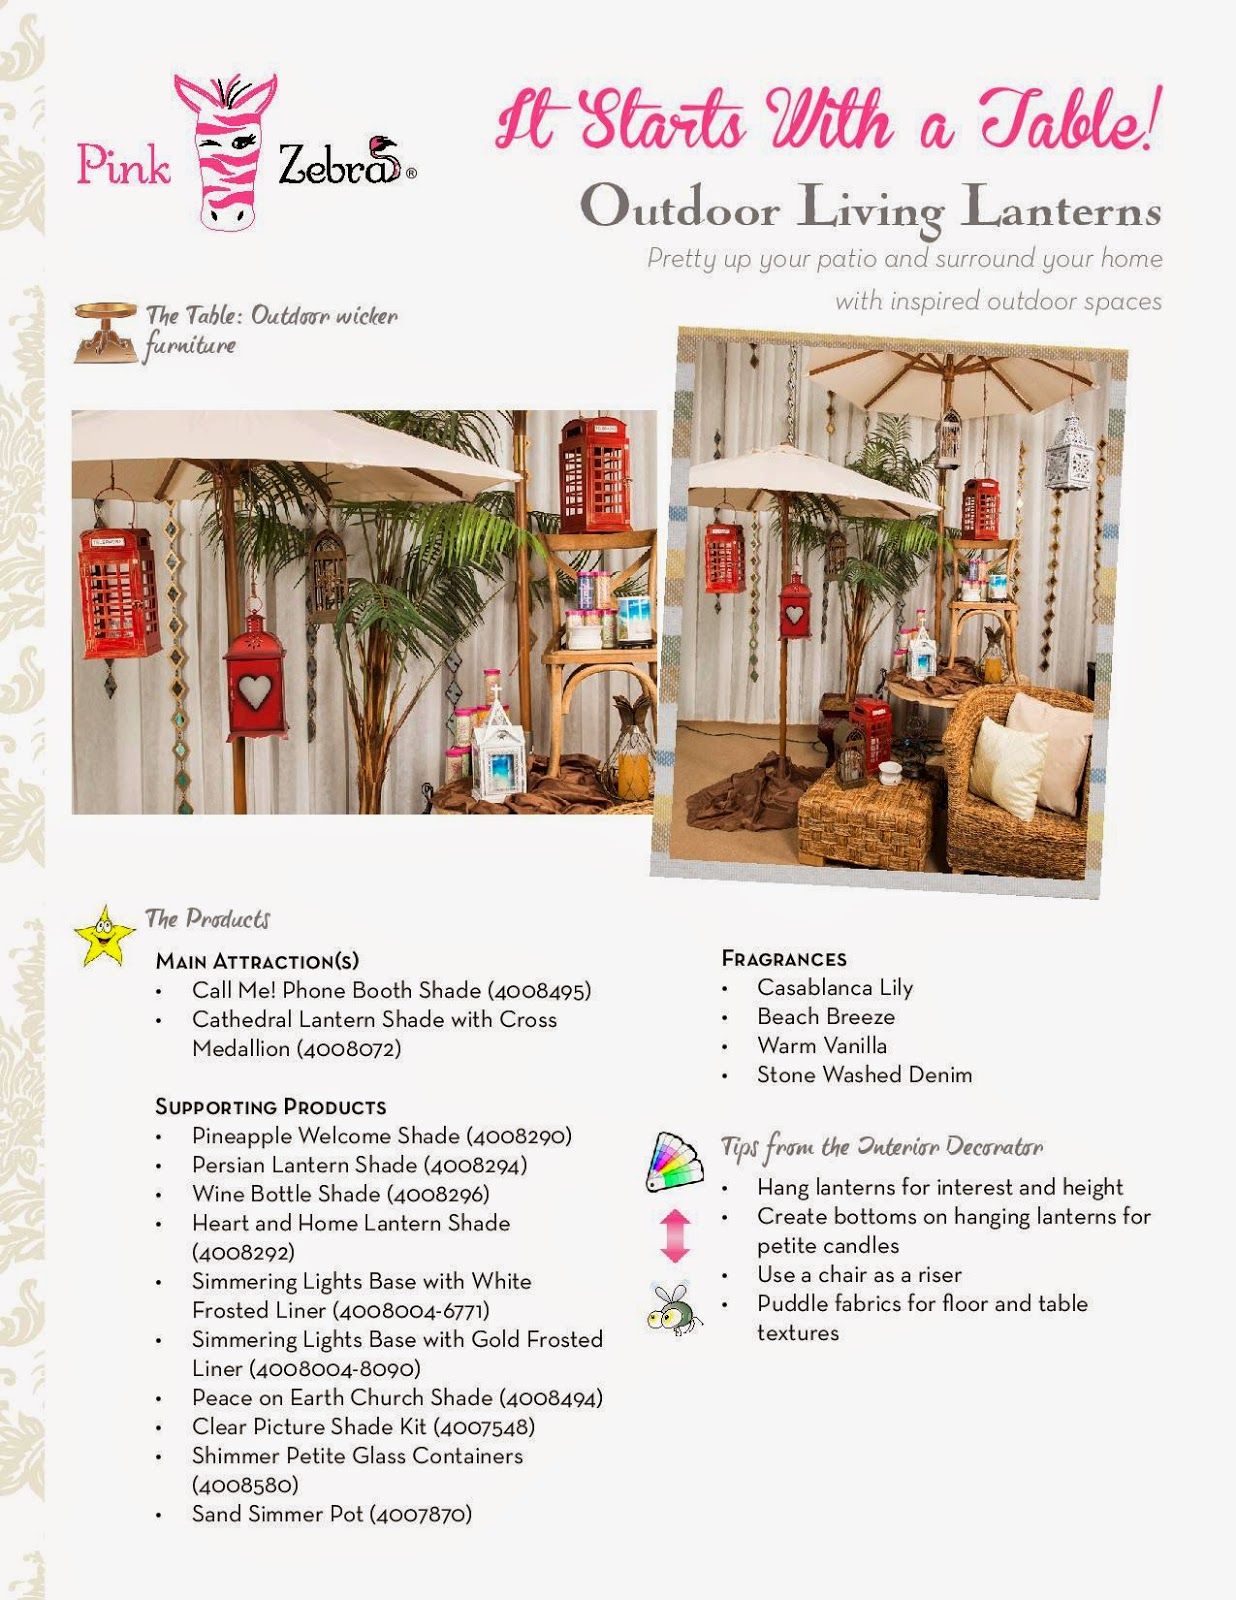 Outdoor decorating Living Lanterns image